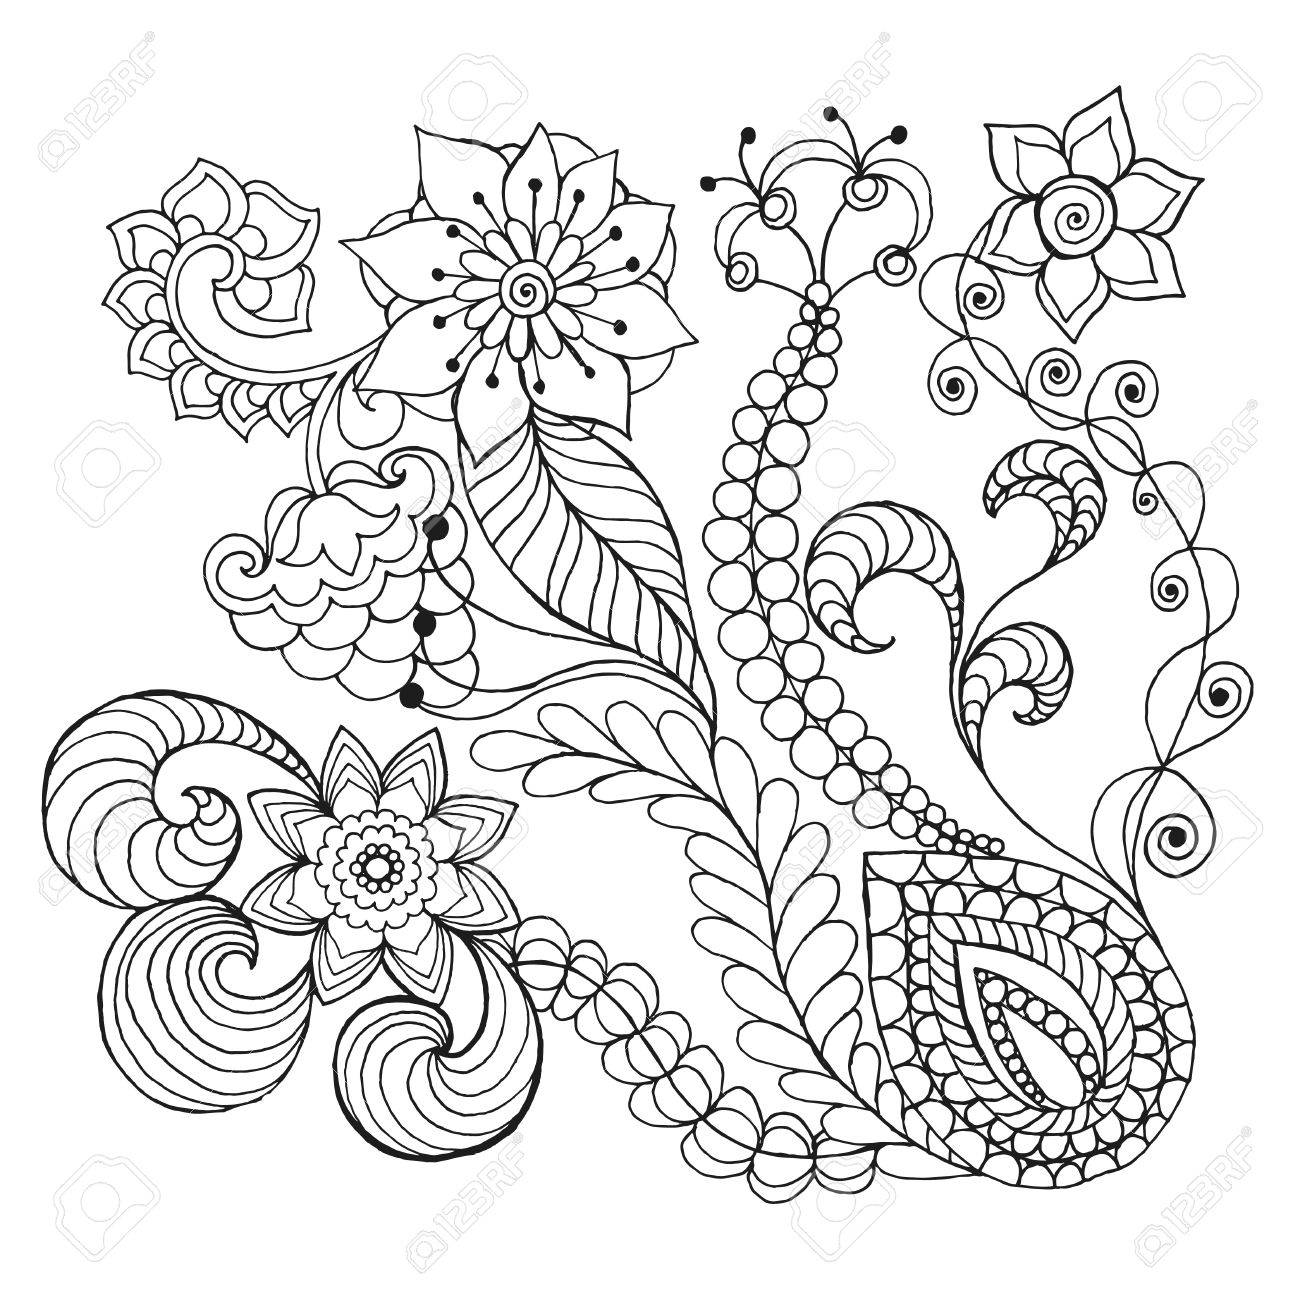 Fantasy Flowers Coloring Page. Hand Drawn Doodle. Floral Patterned ...